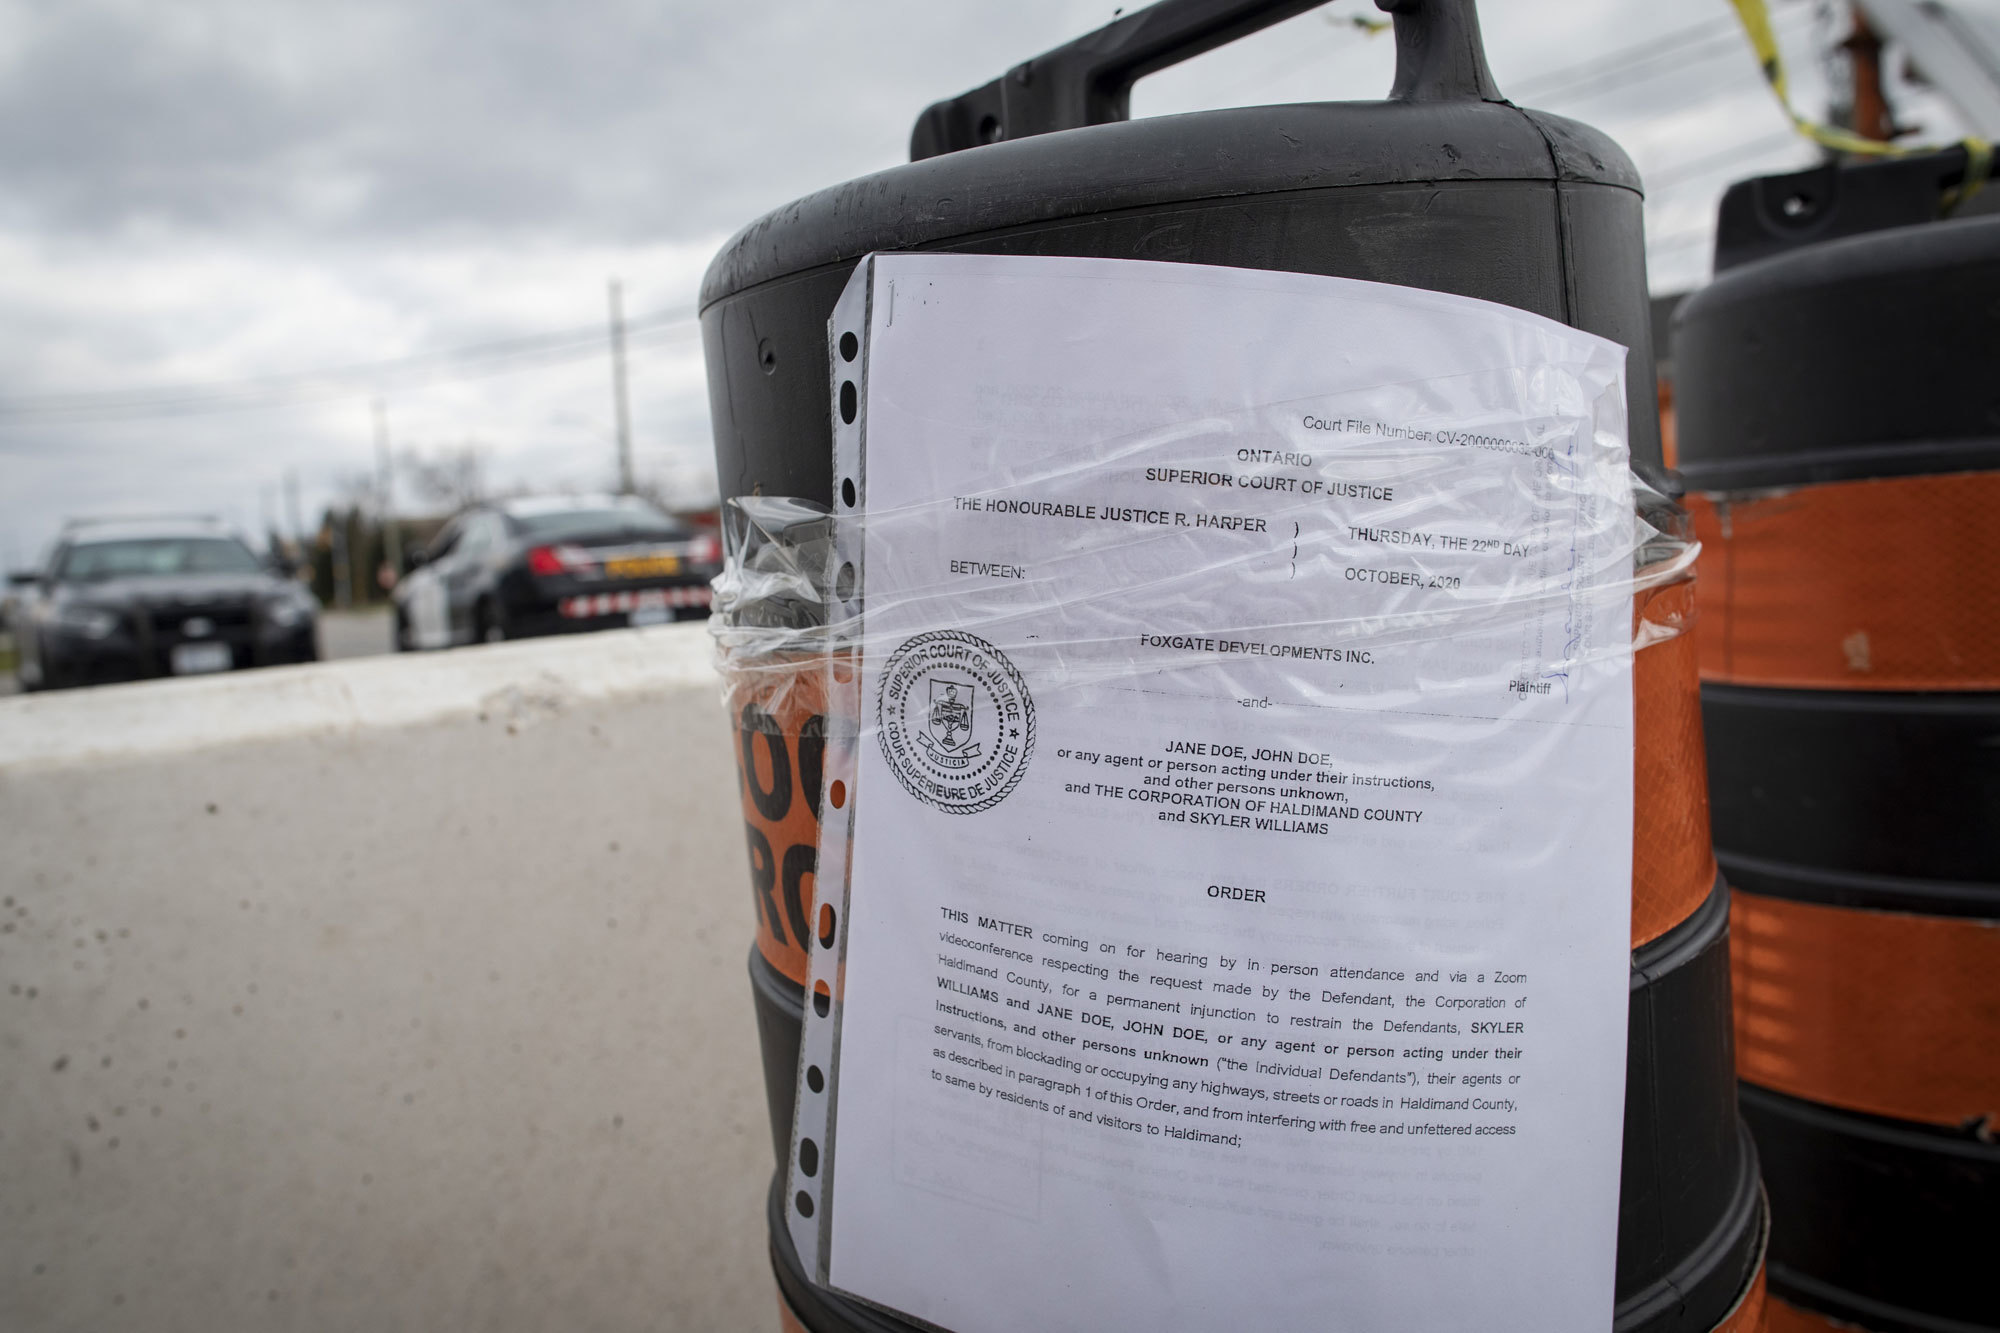 Top, a school bus acts as a barricade on Argyle Street South. Below, a copy of the injunction issued by Ontario Superior Court to halt the occupation of McKenzie Meadows is affixed to a pylon on Argyle. (Evan Mitsui/CBC)